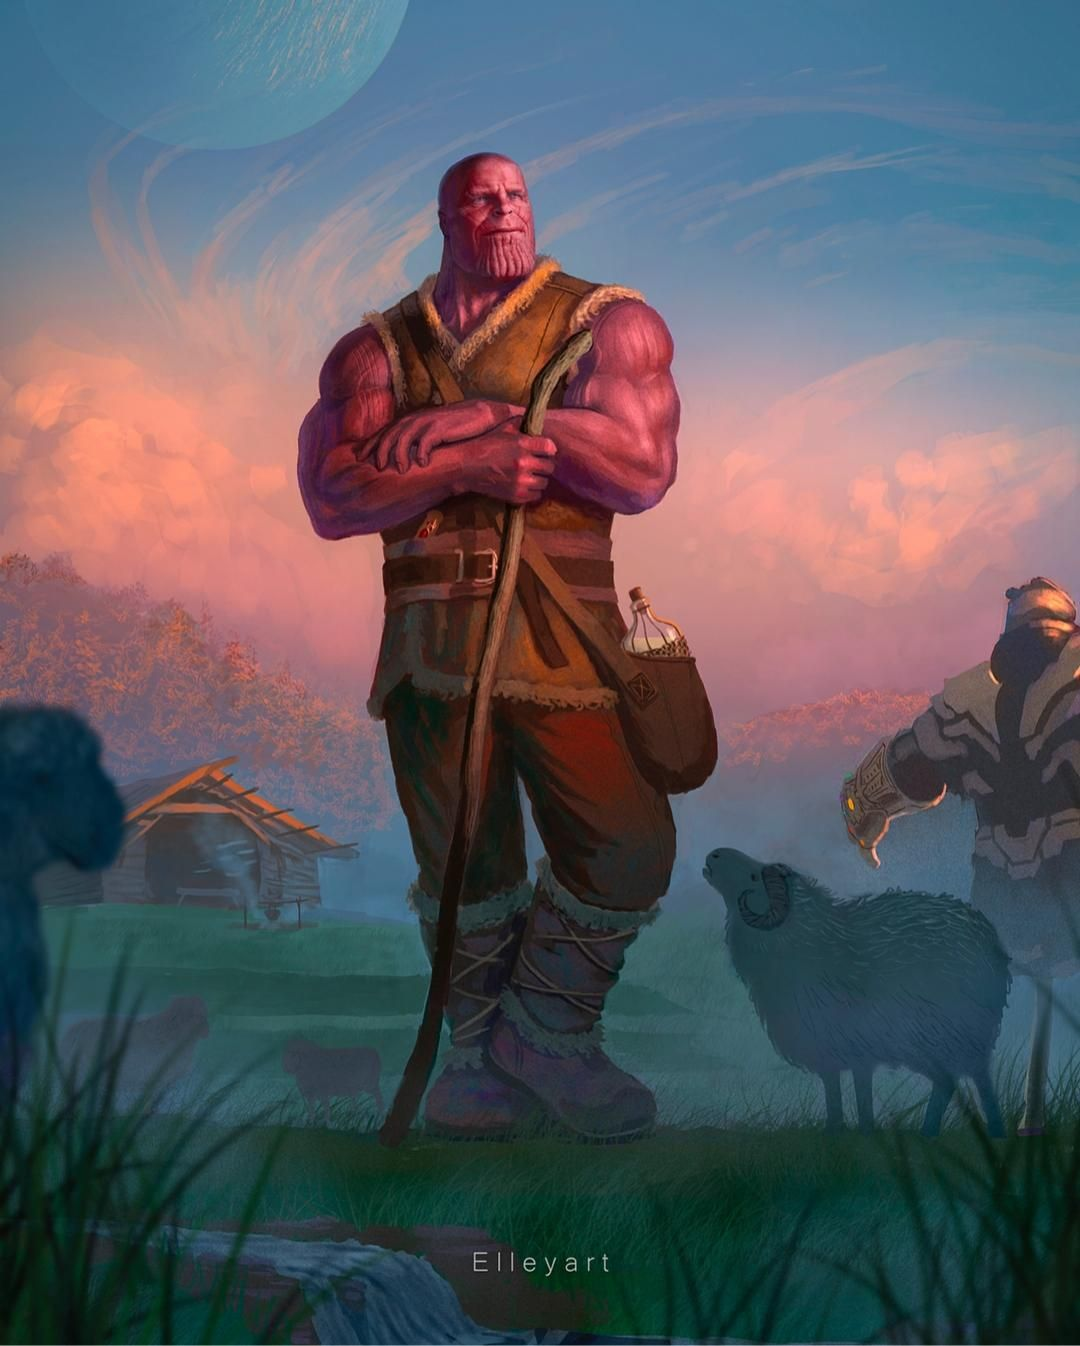 Farmer Thanos by @elleyart on Instagram  Could we see this